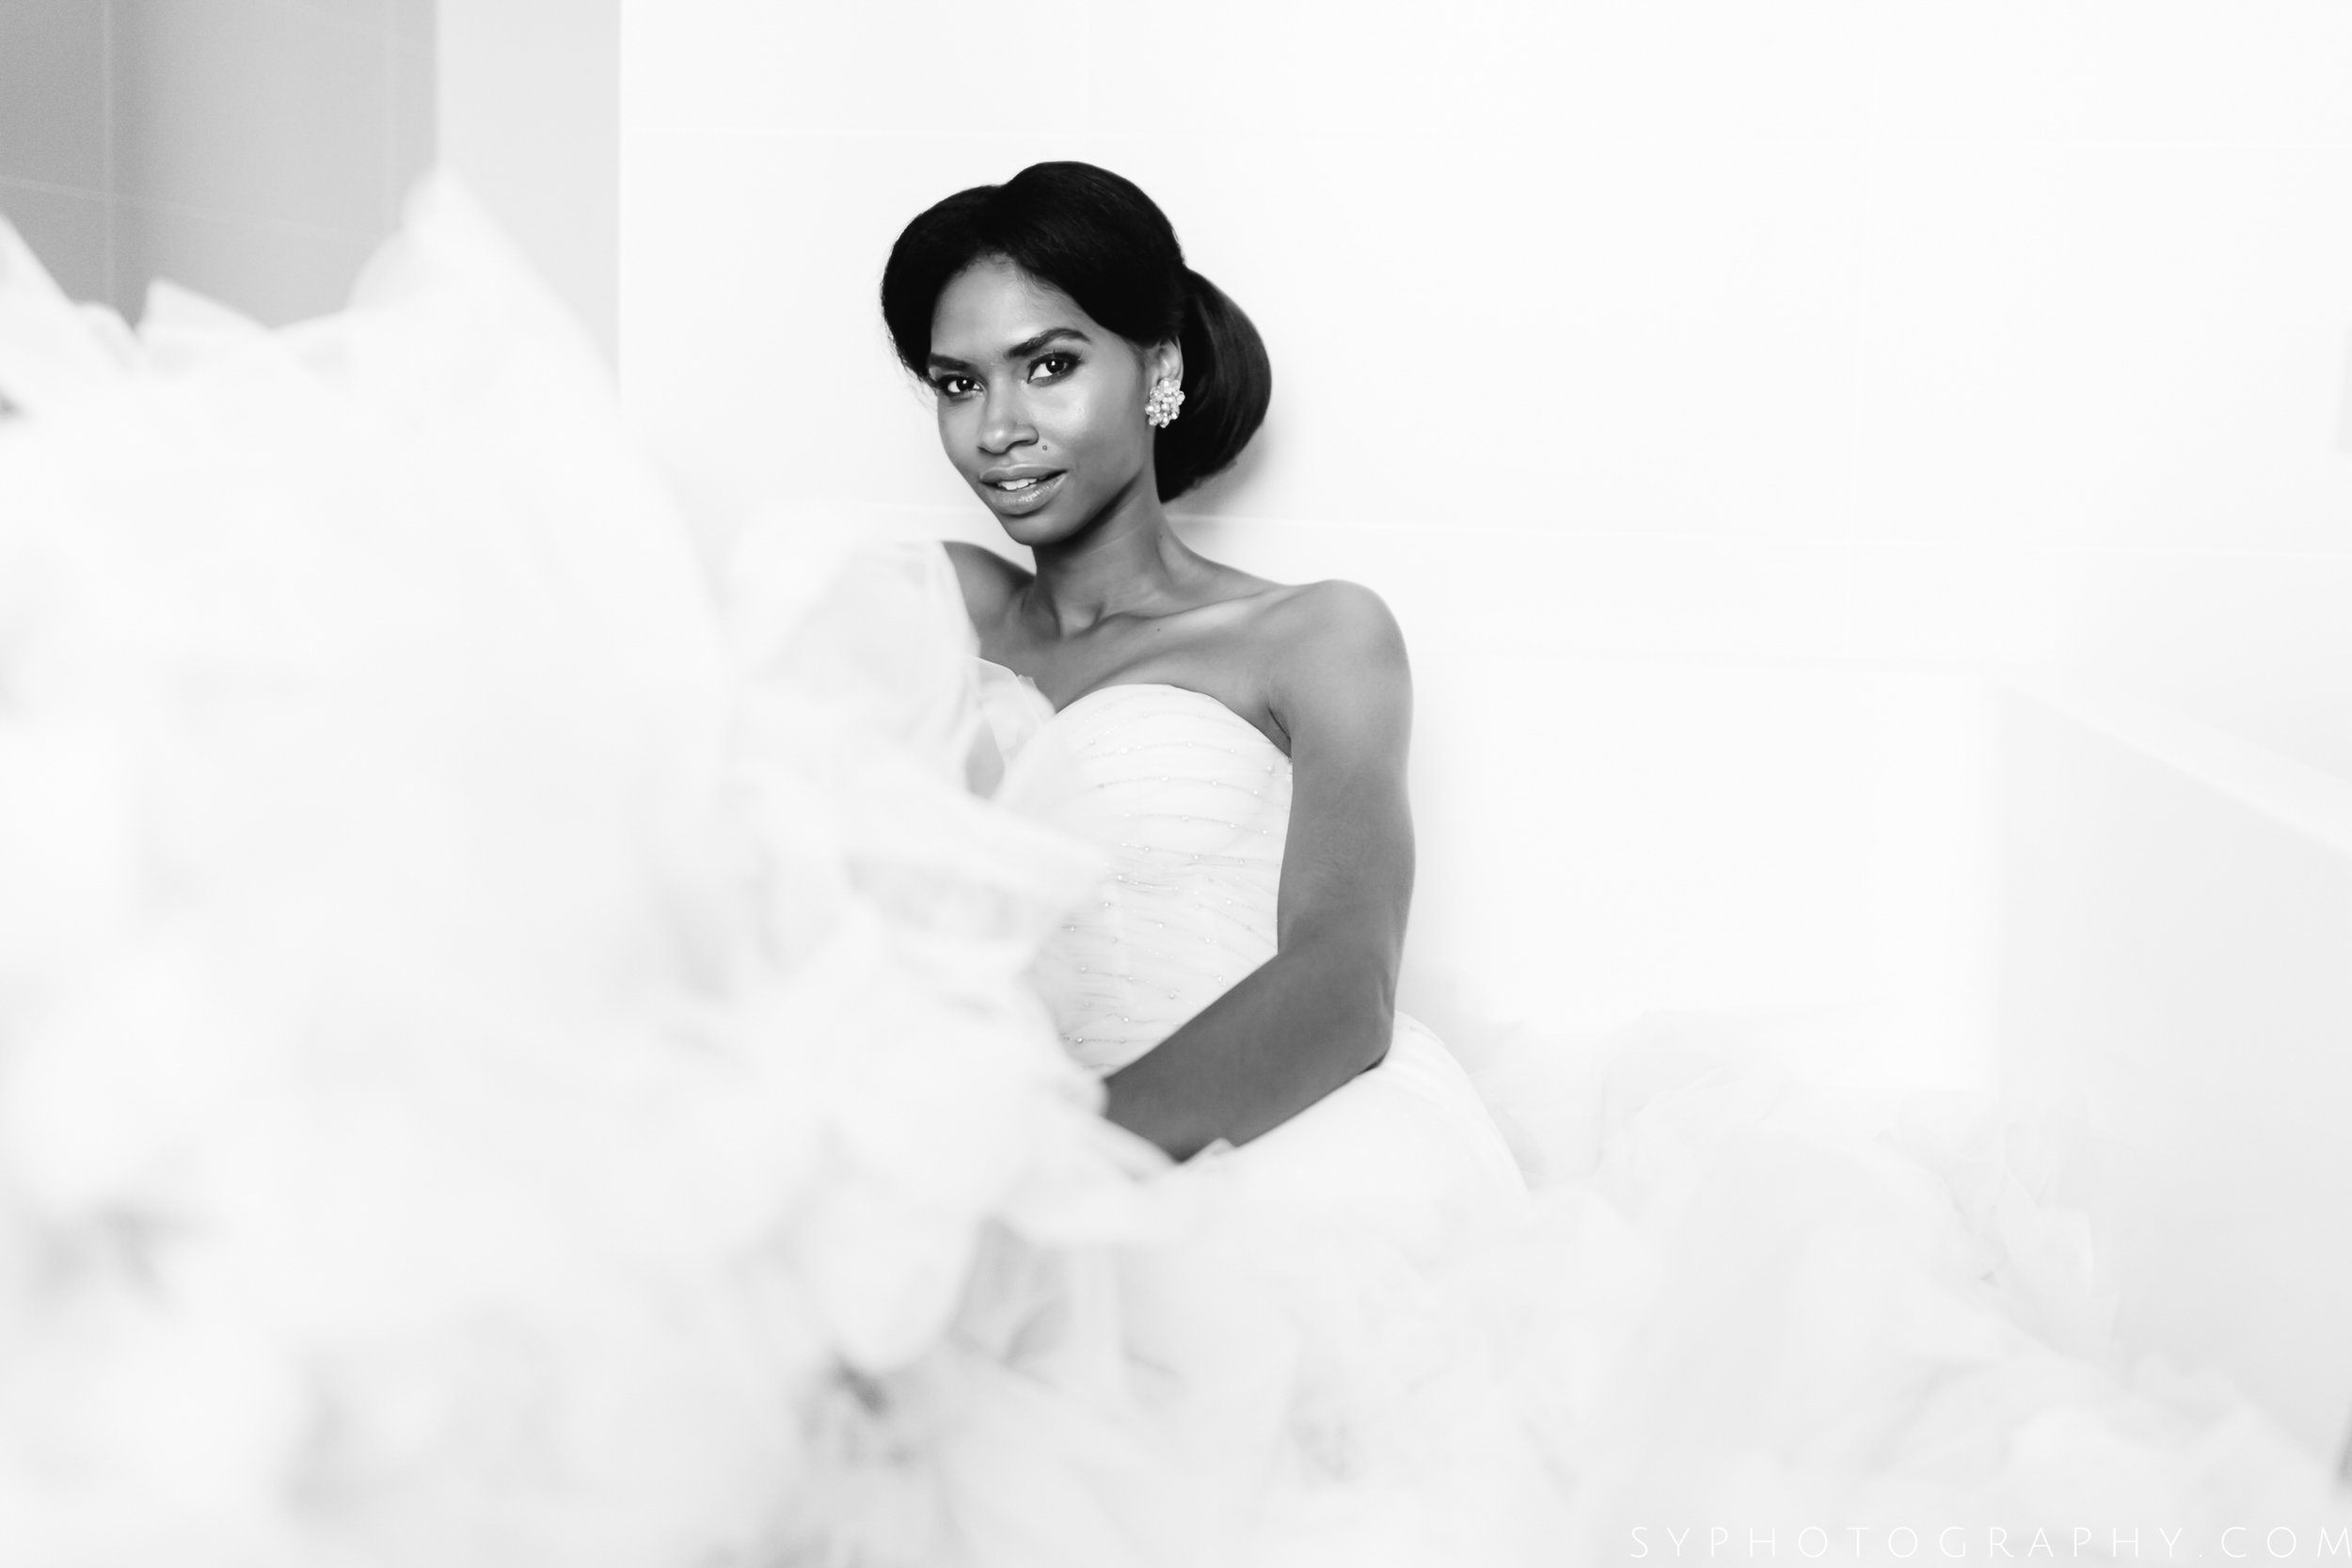 Credits:   Sy Photography   |   Dimitras Bridal   |   Caroline Shaw: The Wedding Dresser   |   Hair by Juan Jose   |   Bridal by Aga Rhoses